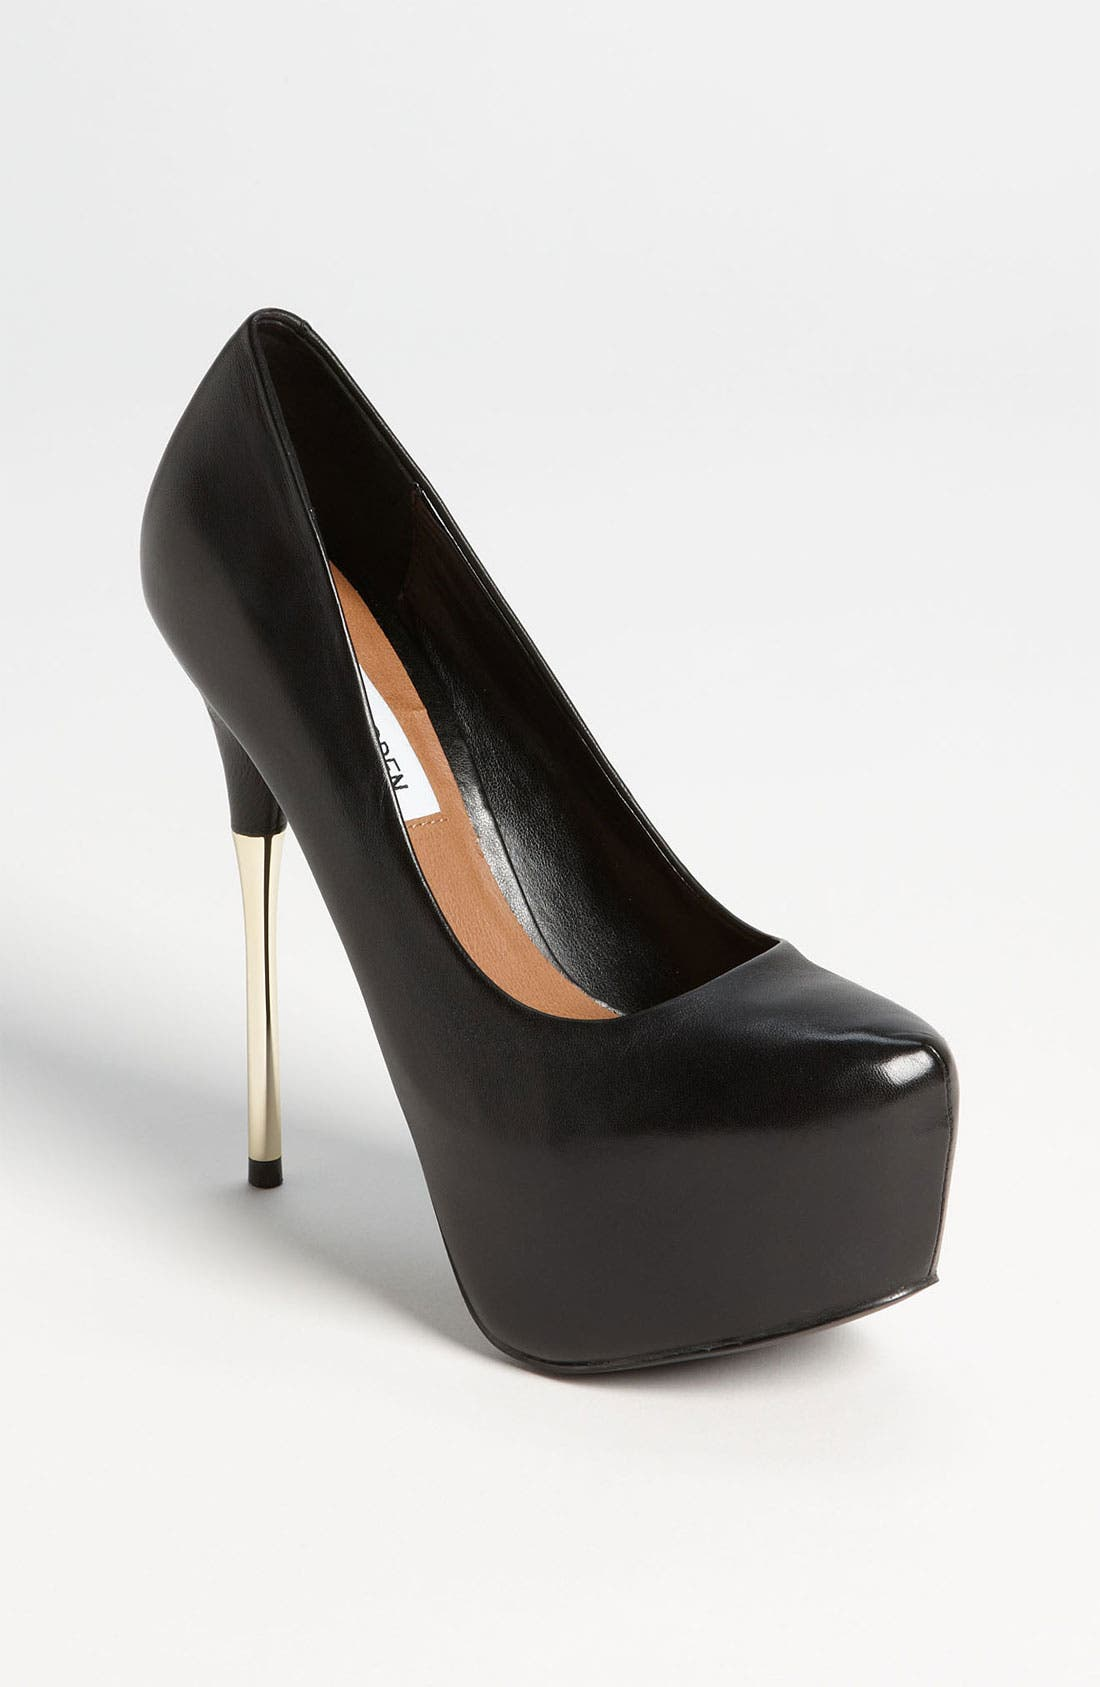 Alternate Image 1 Selected - Steve Madden 'Spikley' Pump